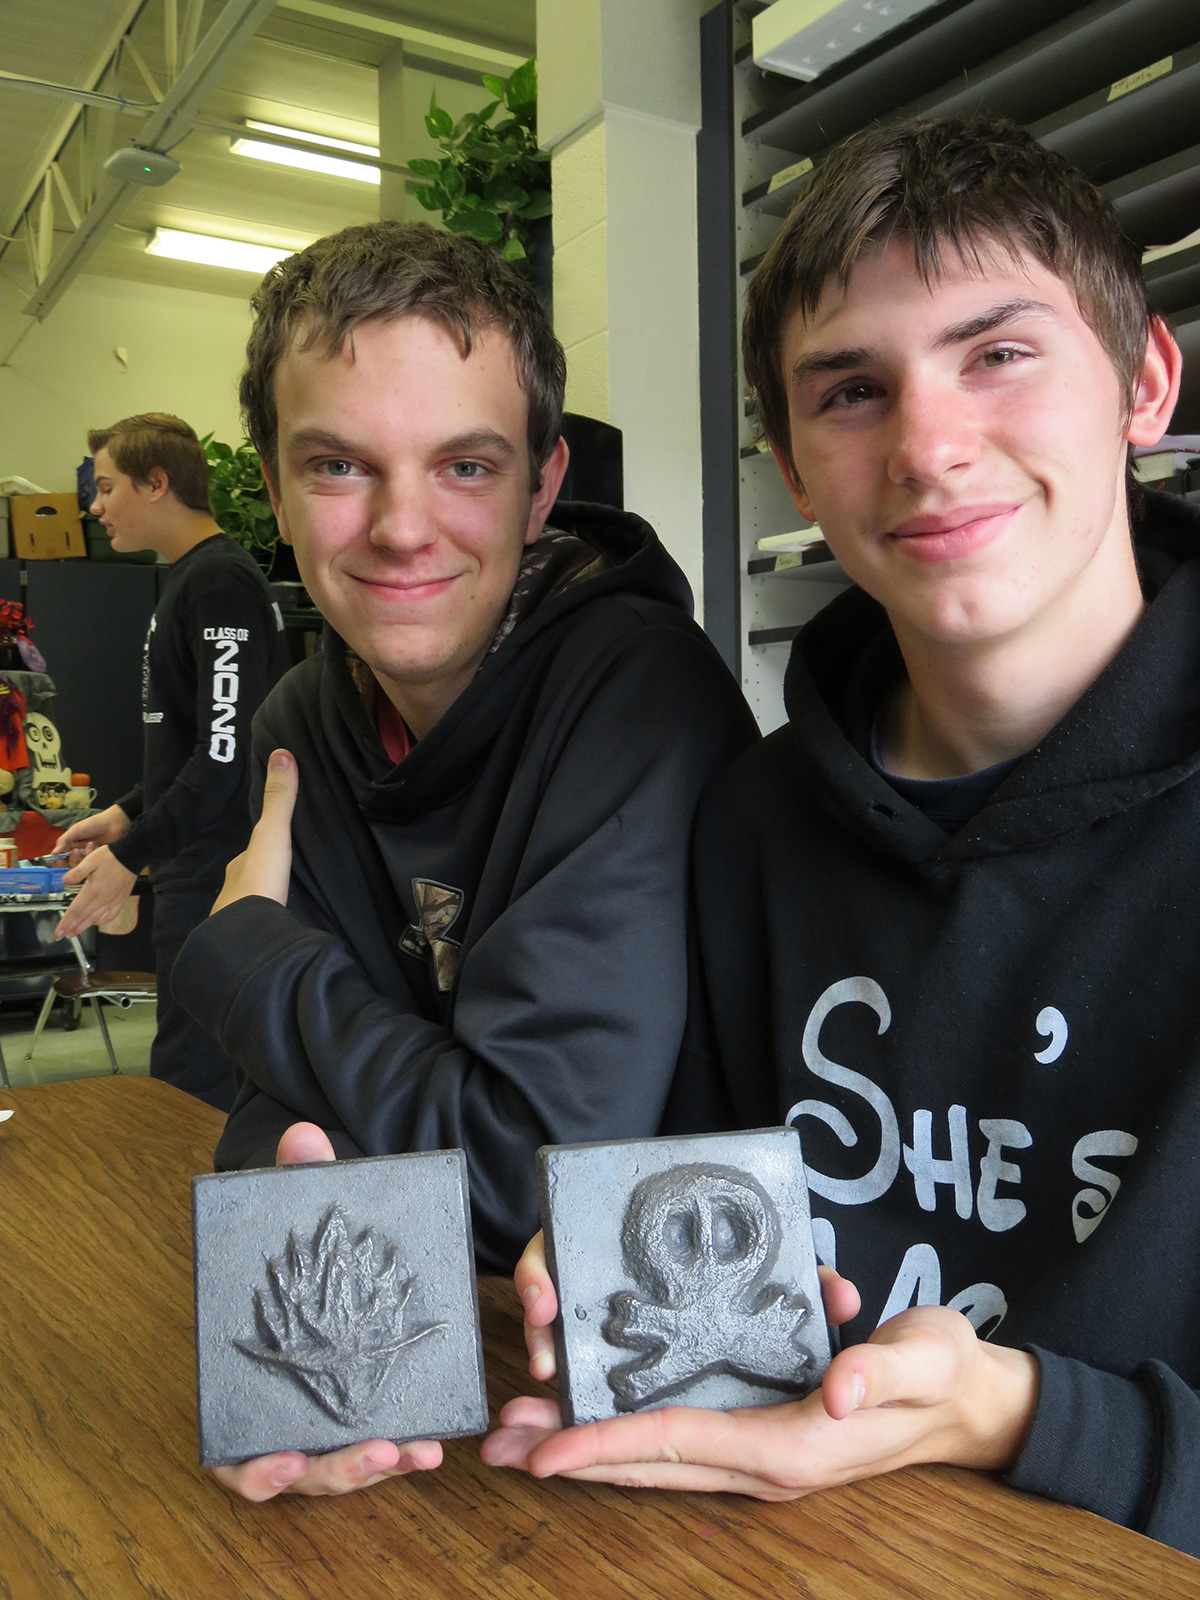 Brethren students with iron tiles